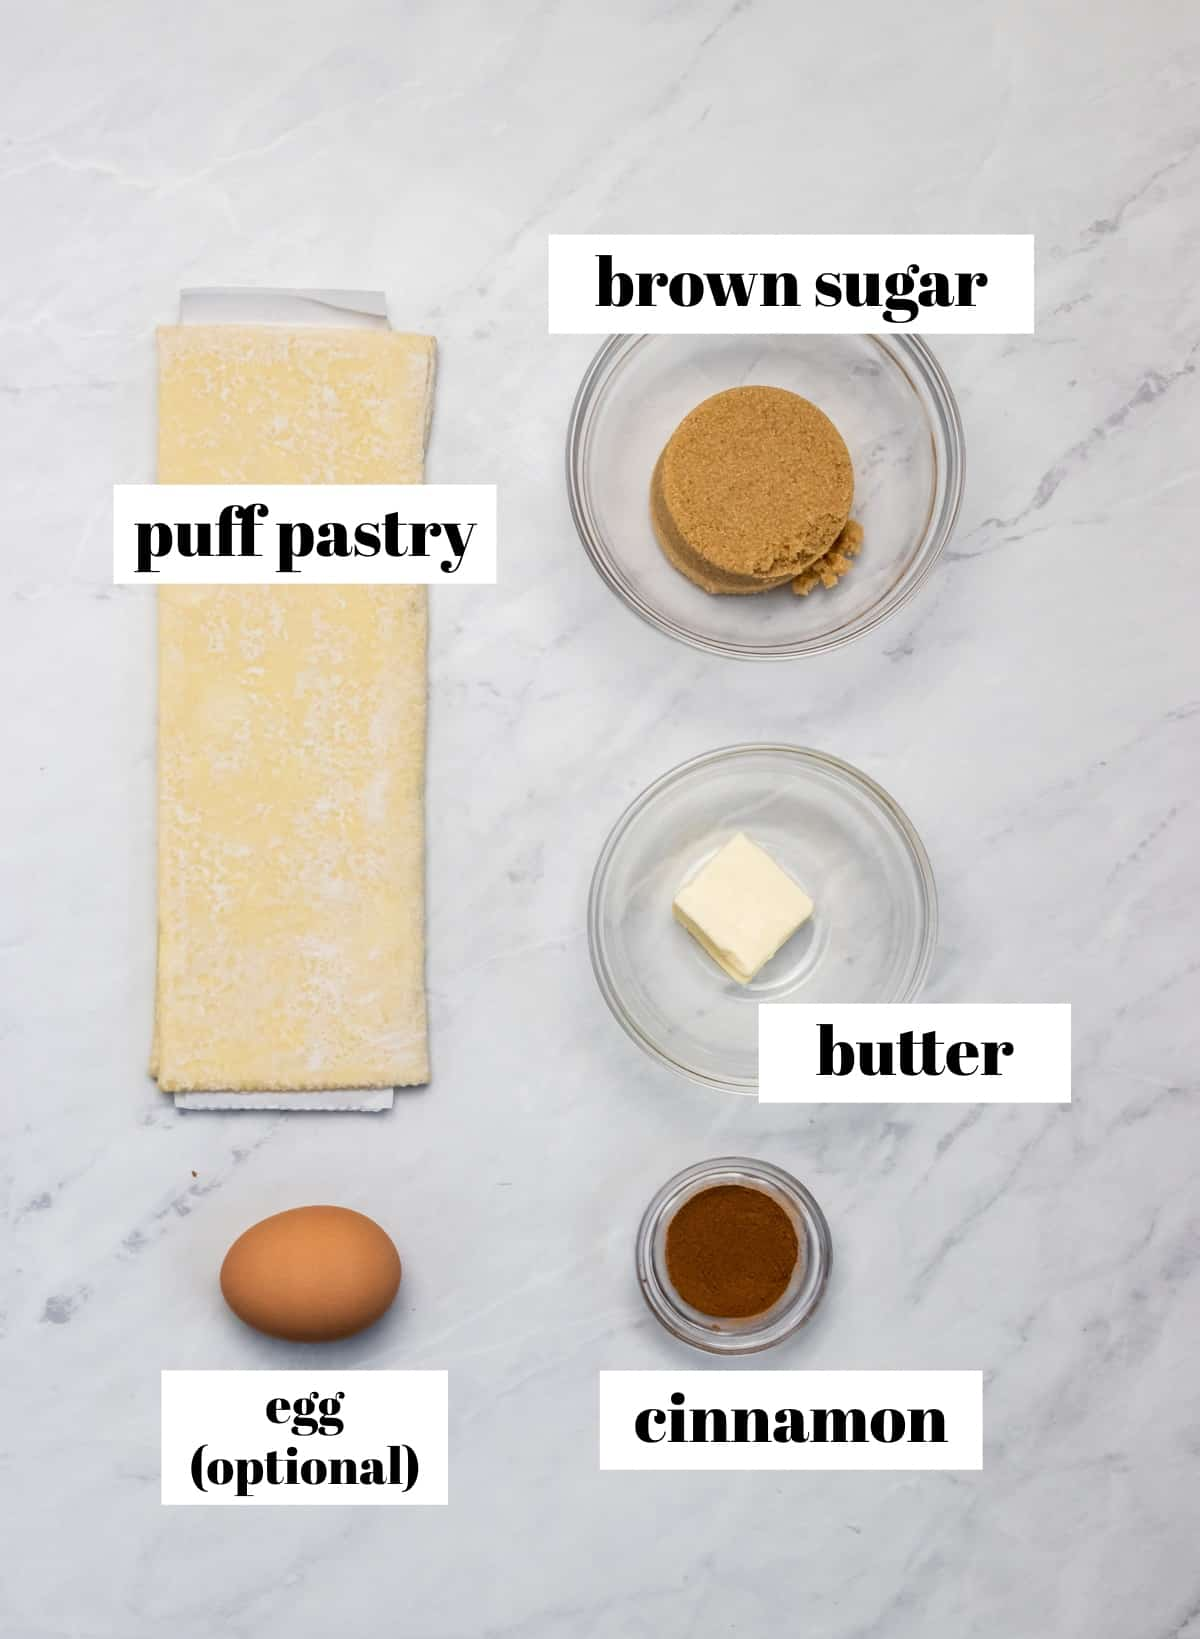 Brown sugar, butter and ingredients labeled on counter.